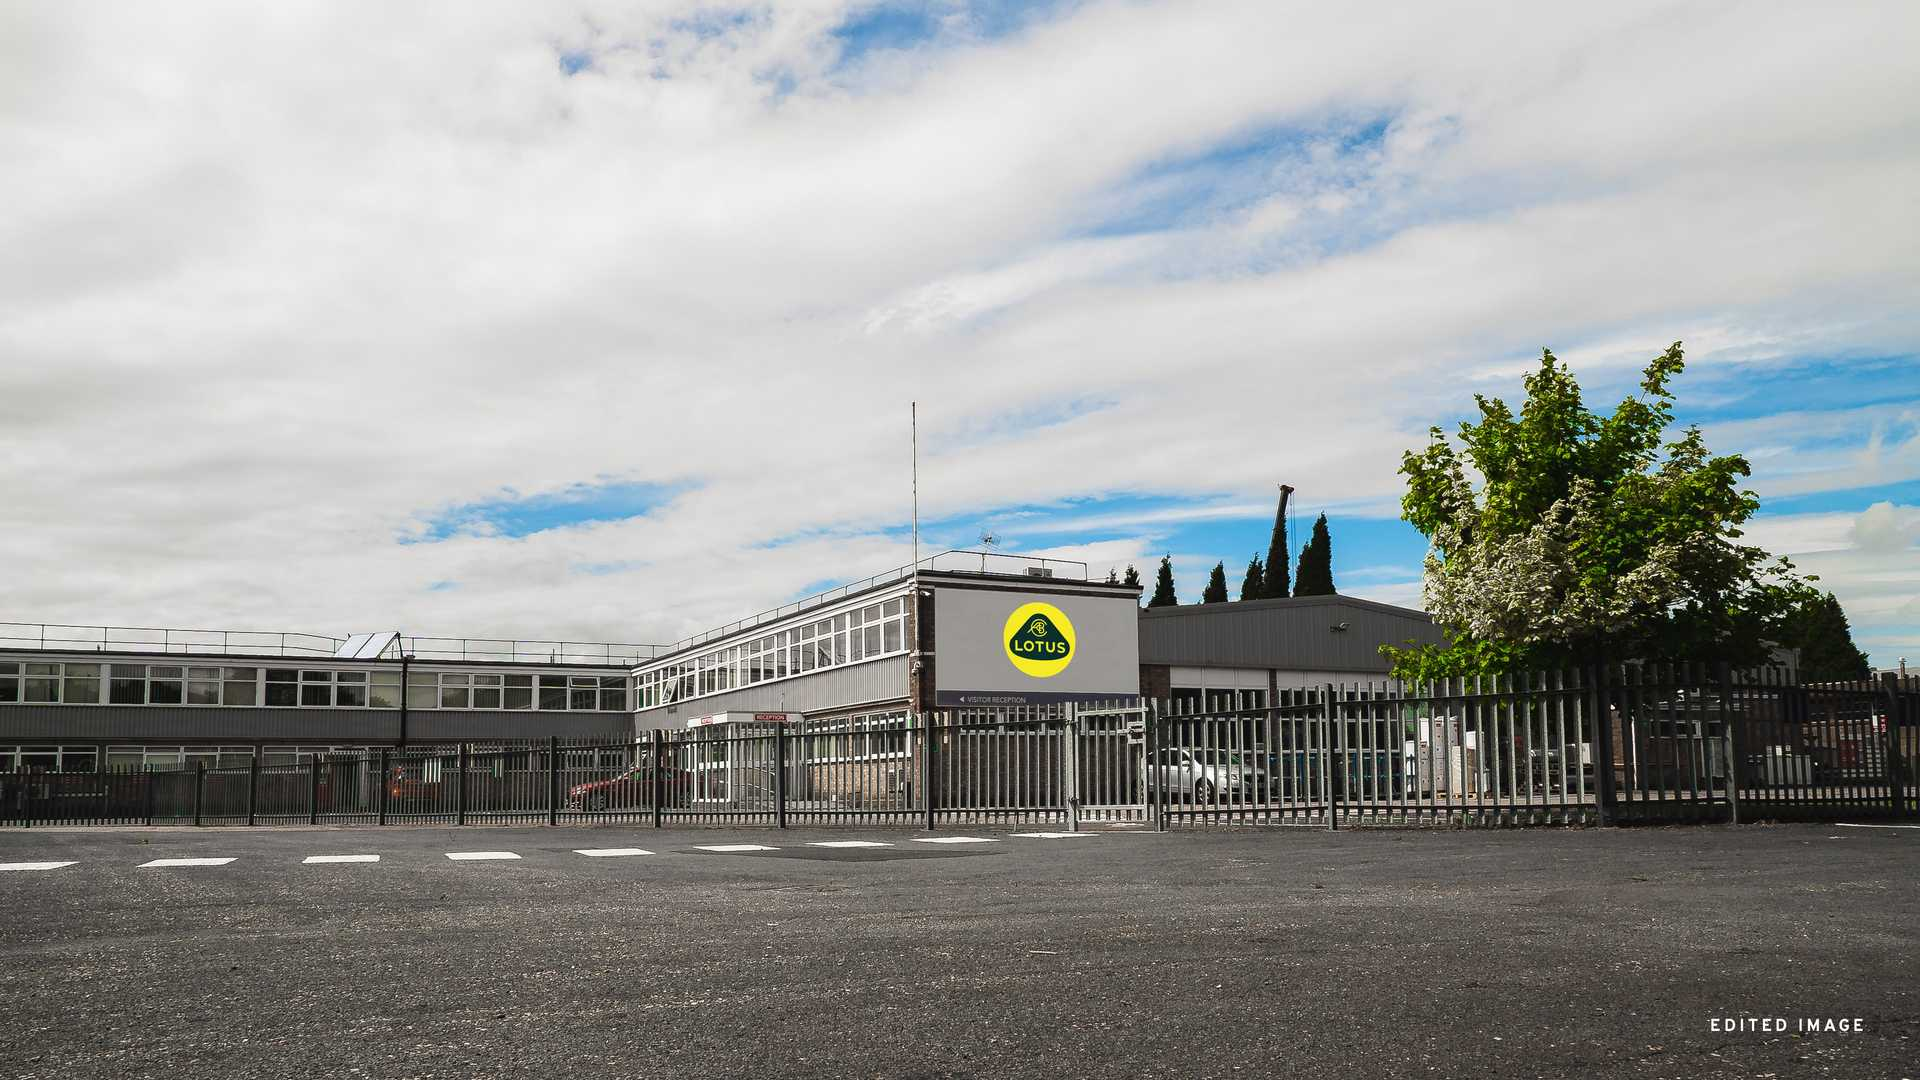 Lotus adds new manufacturing site near Hethel HQ